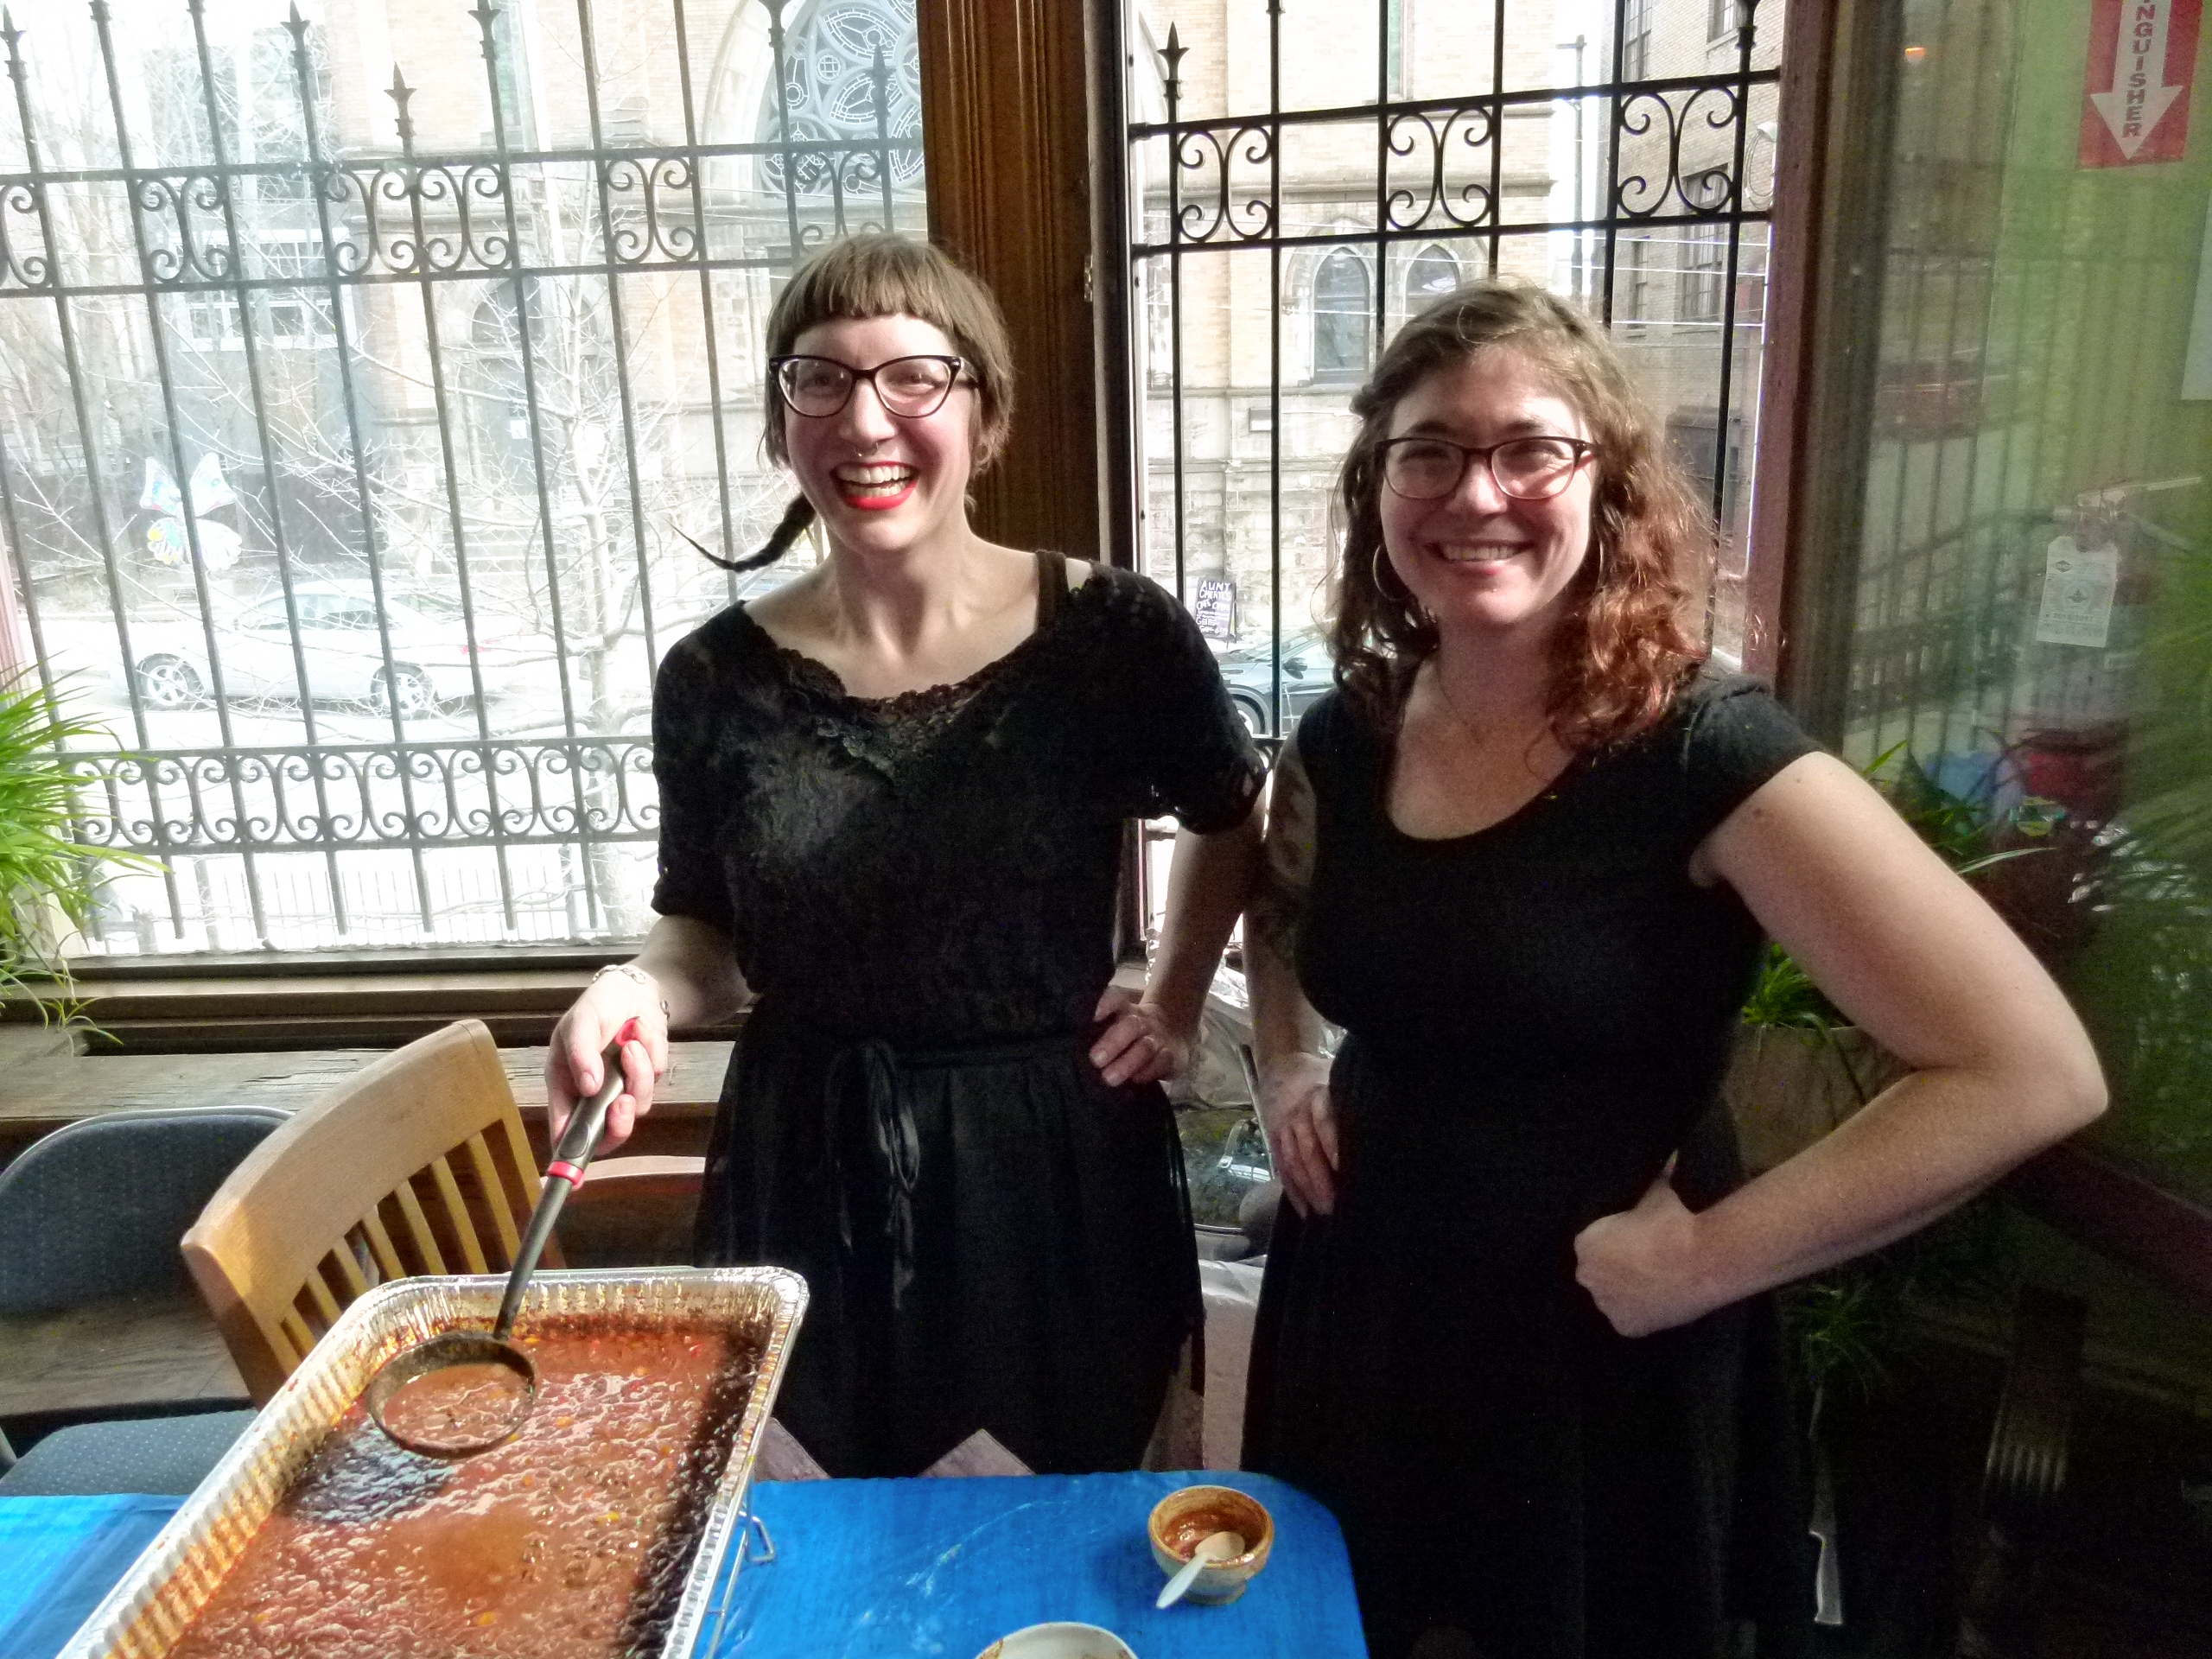 Hipsters make great chili too. Grizzemily (l.) is ready to scoop some of their Holy Mole! chili into a bowl while Katie Johnson (r.) stands ready to assist.